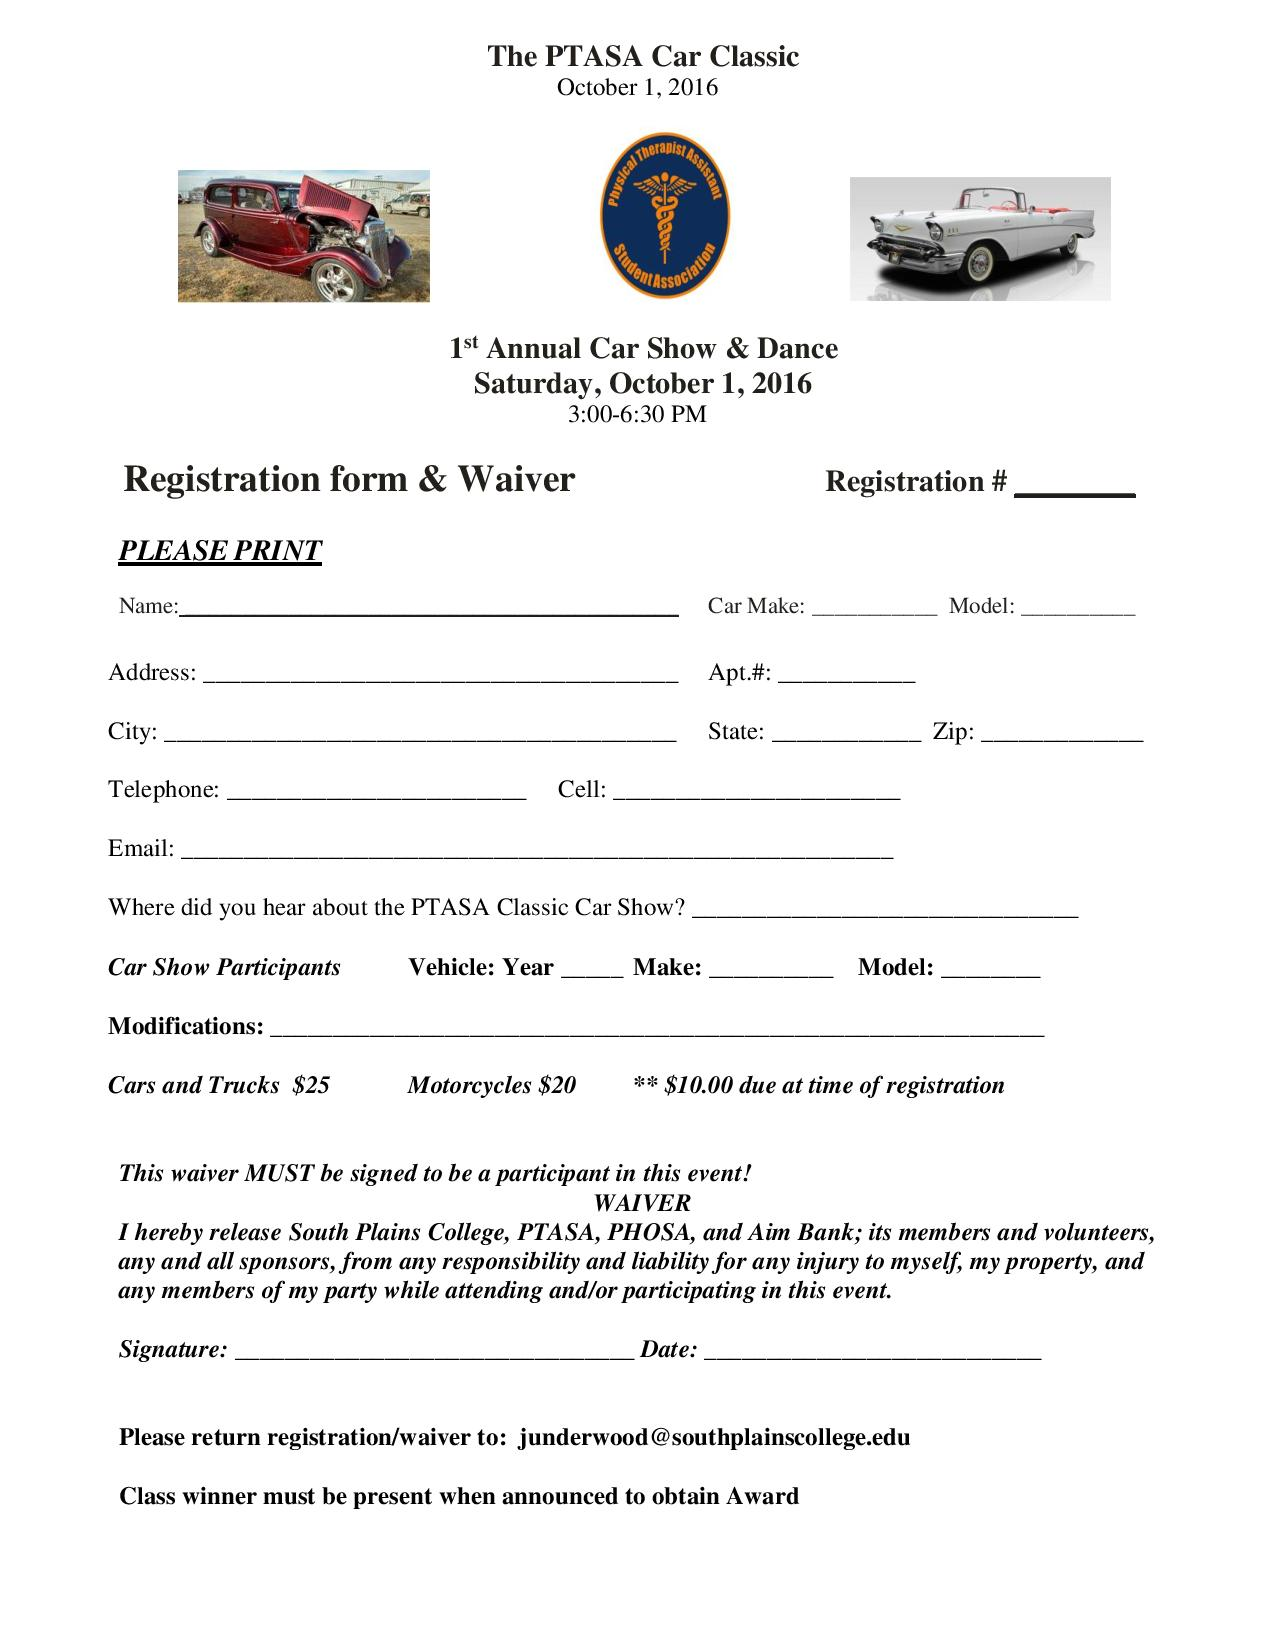 Car show registration form 1 page 001 klvt community calendar car show registration form 1 page 001 thecheapjerseys Image collections